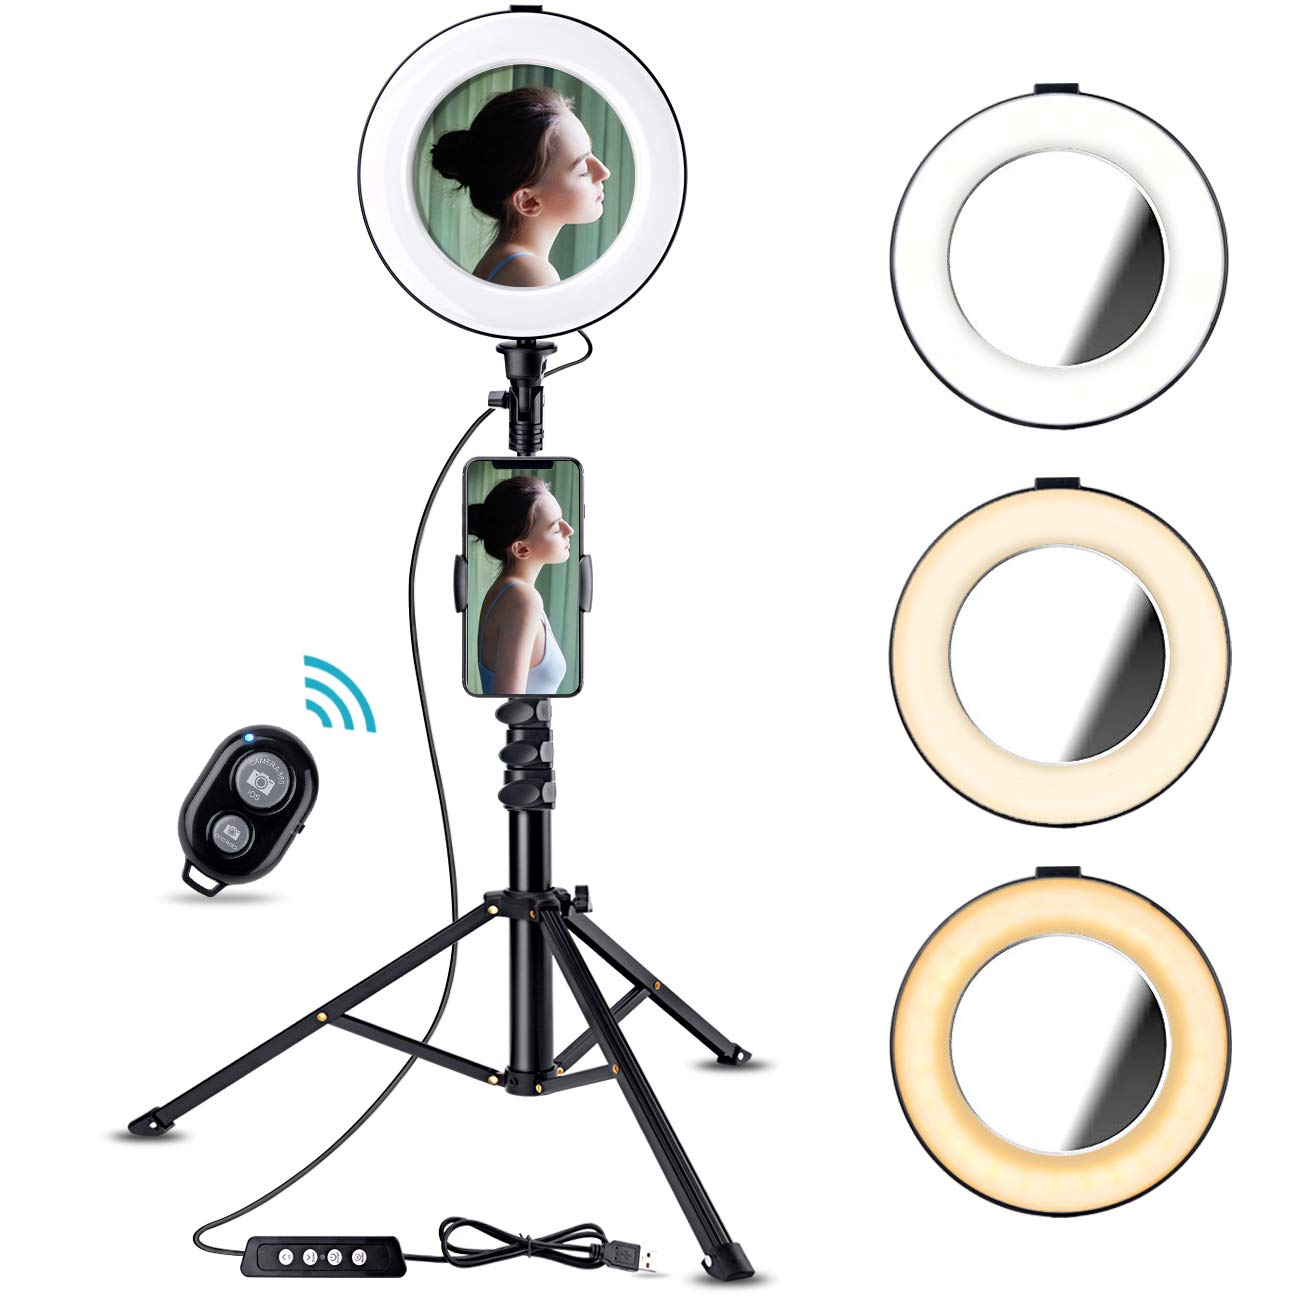 8'' Selfie Ring Light with Tripod Stand & Cell Phone Holder for Live Stream/YouTube Videos, Bosledy Makeup Lights with Mirror, Mini Led Camera Ringlight for Photography by Bosledy